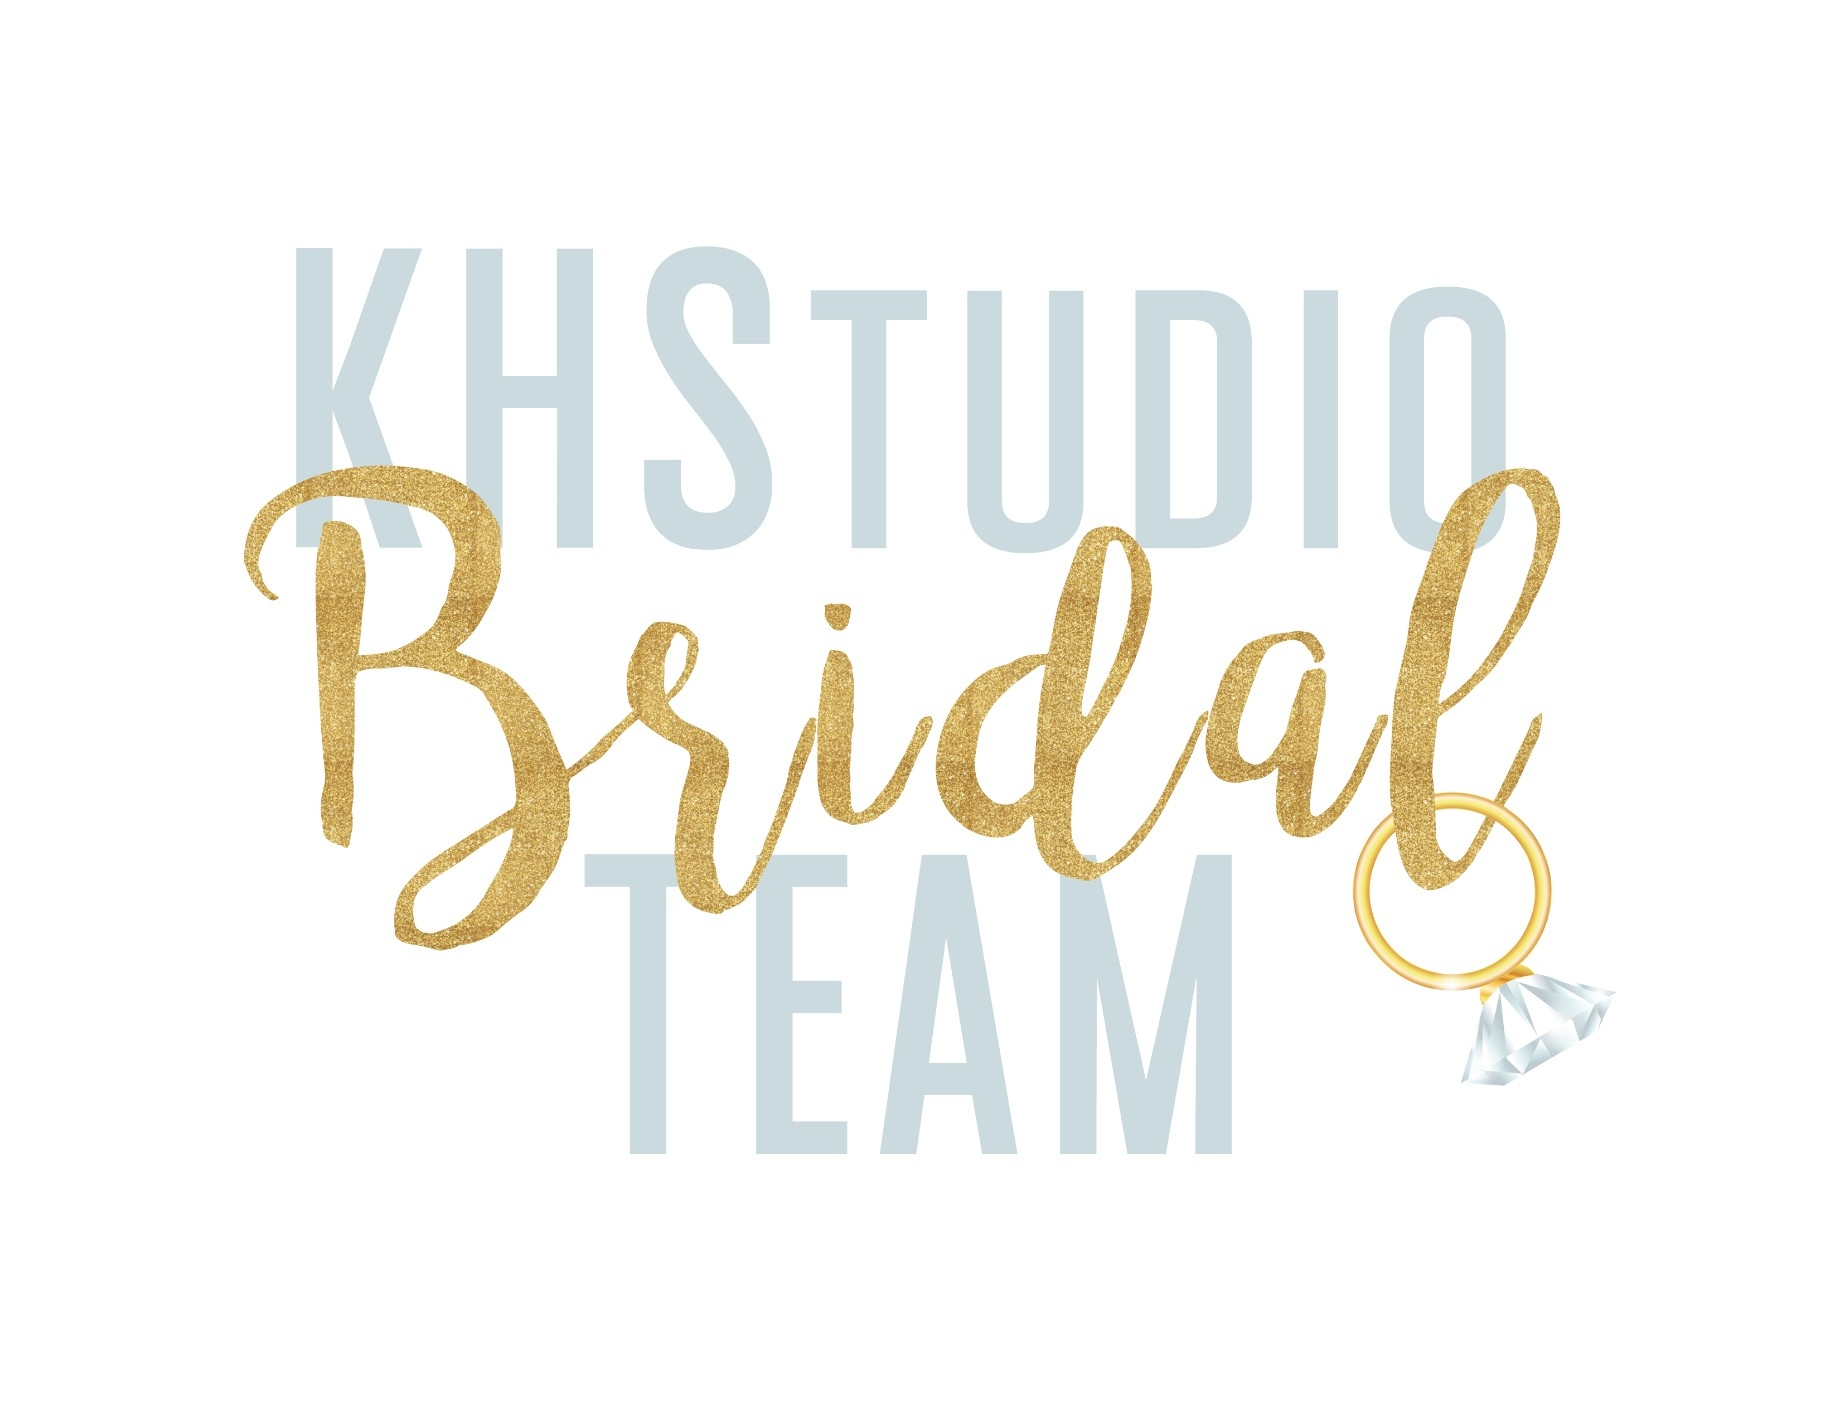 Kristen Hair Studio Bridal Team Logo